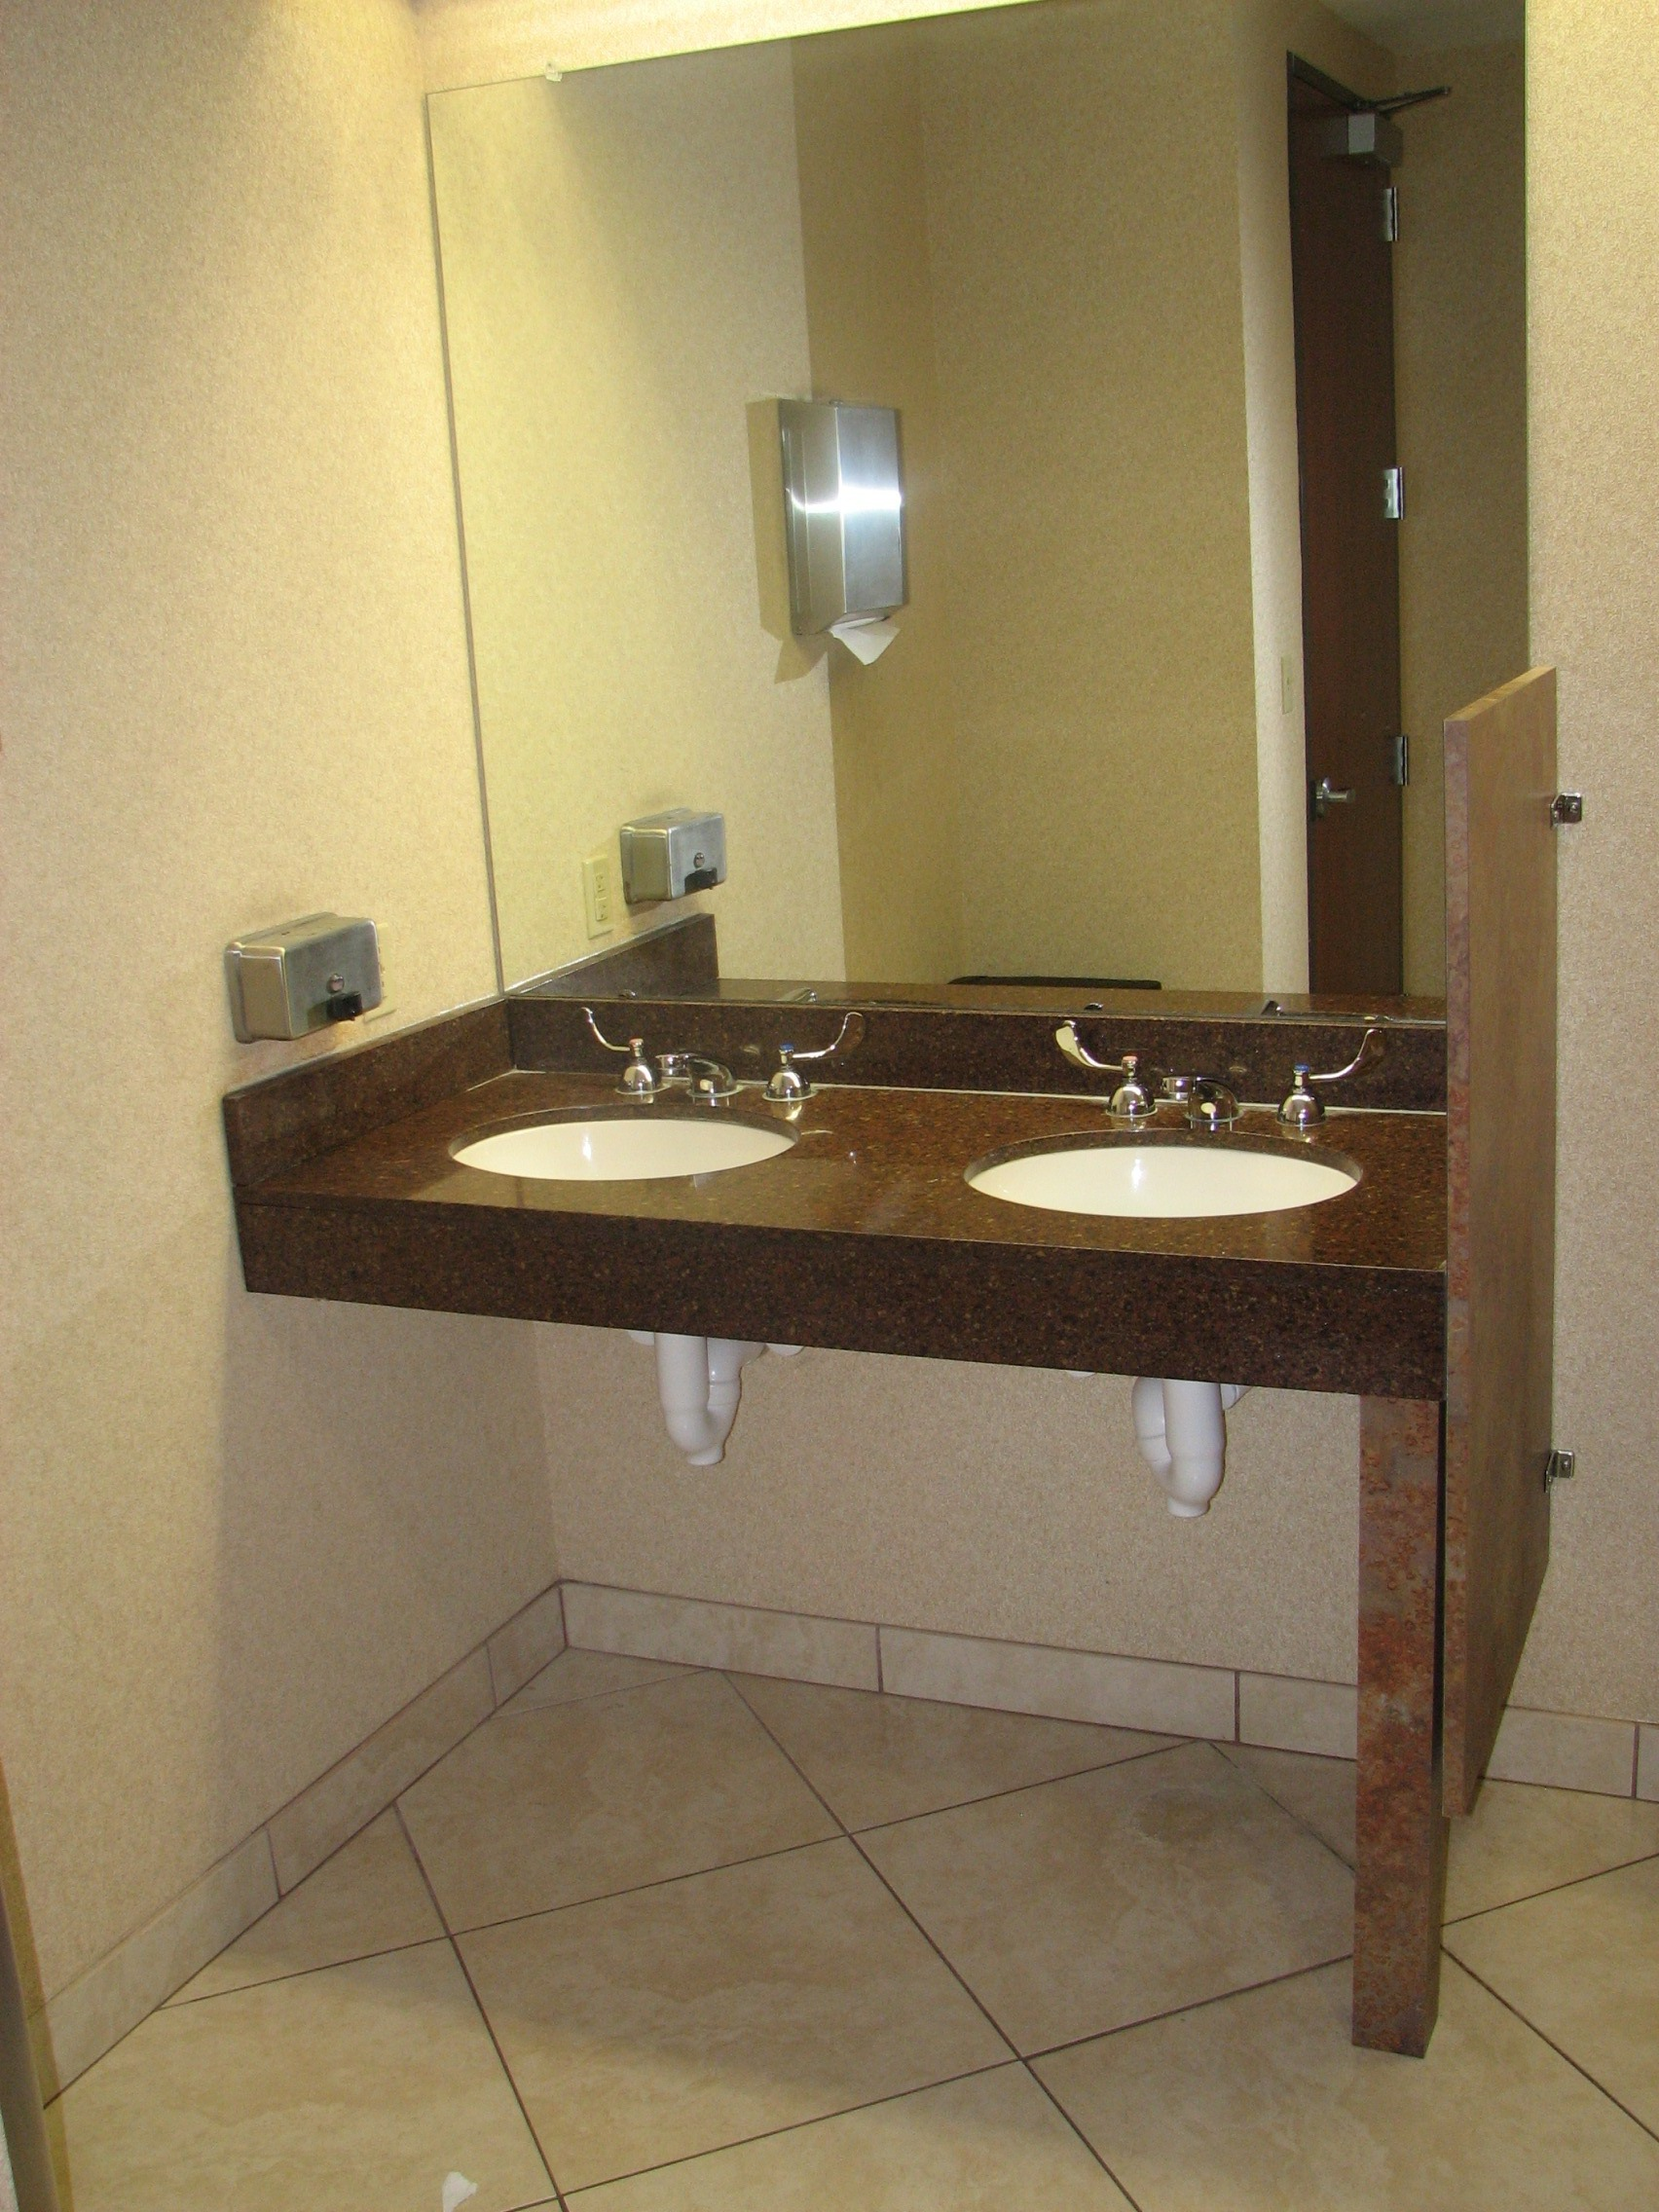 Granite vanity top with pipe wrap protection